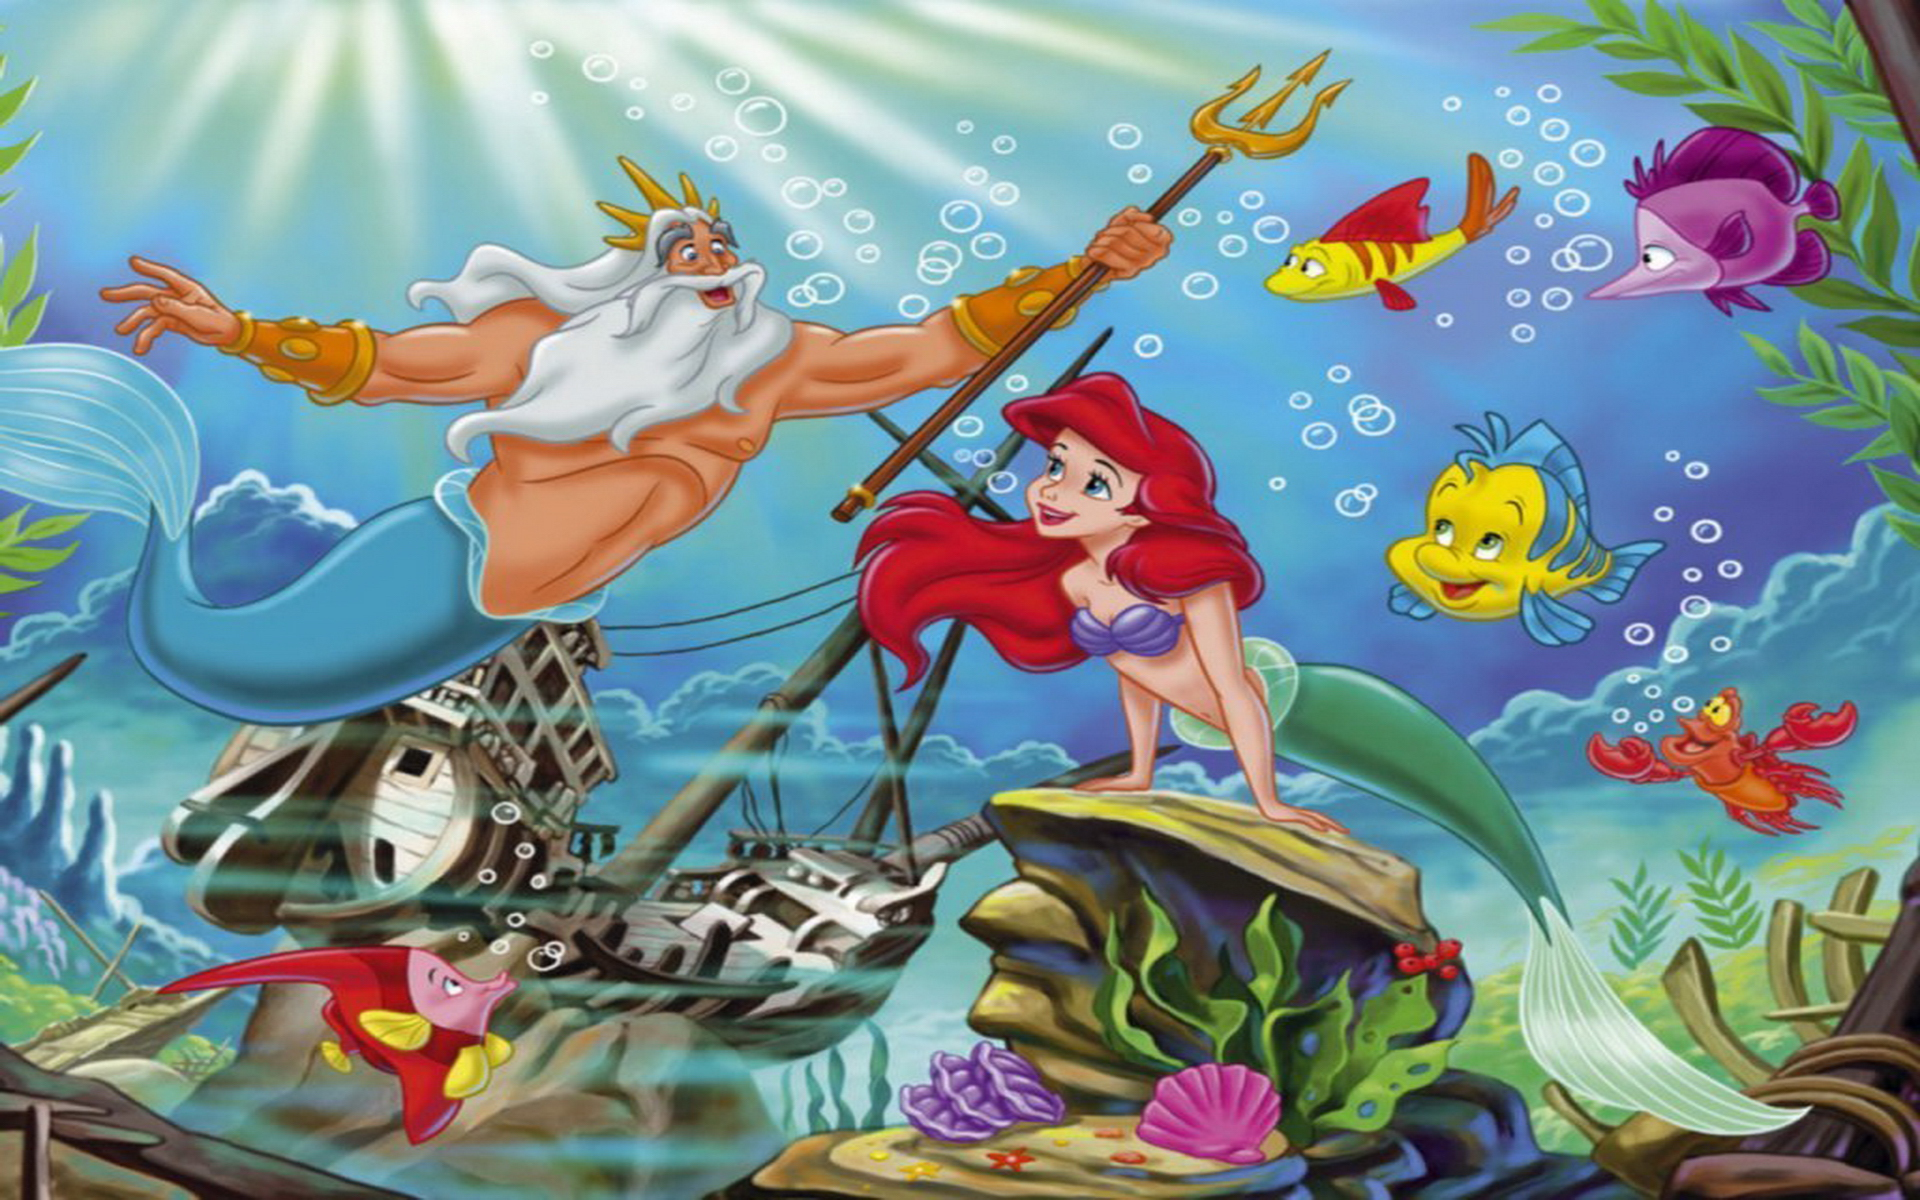 Ariel Wallpaper Hd X Wallpaperlayer The Little Mermaid Wallpaper For The Iphone And Ipod Touch 1920x1200